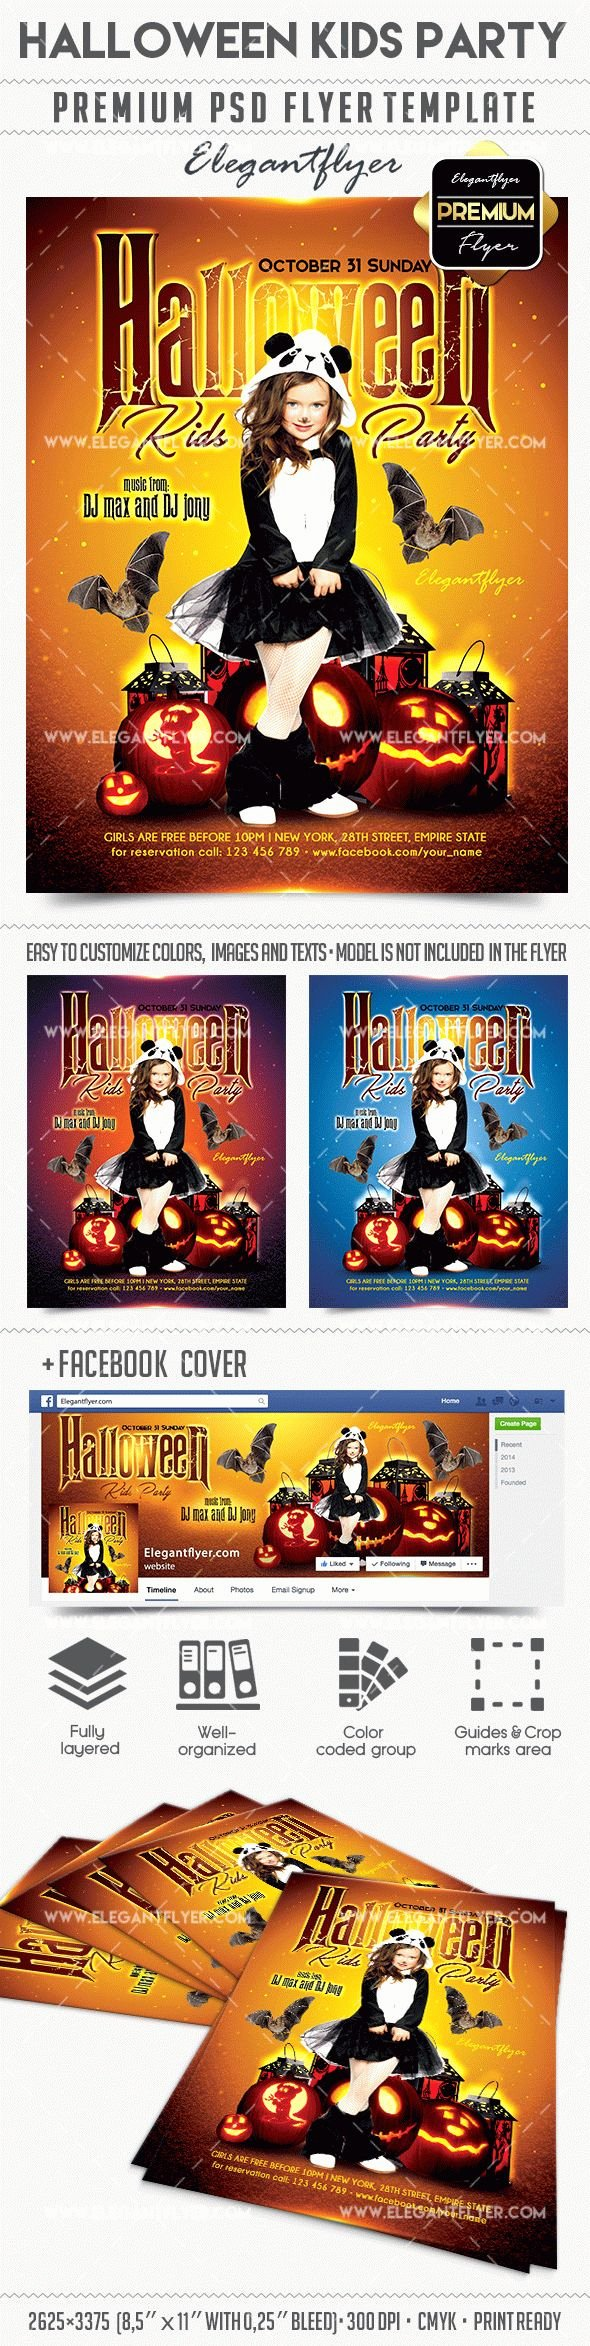 Facebook Template for Students Inspirational Halloween Kids Party – Flyer Psd Template – by Elegantflyer